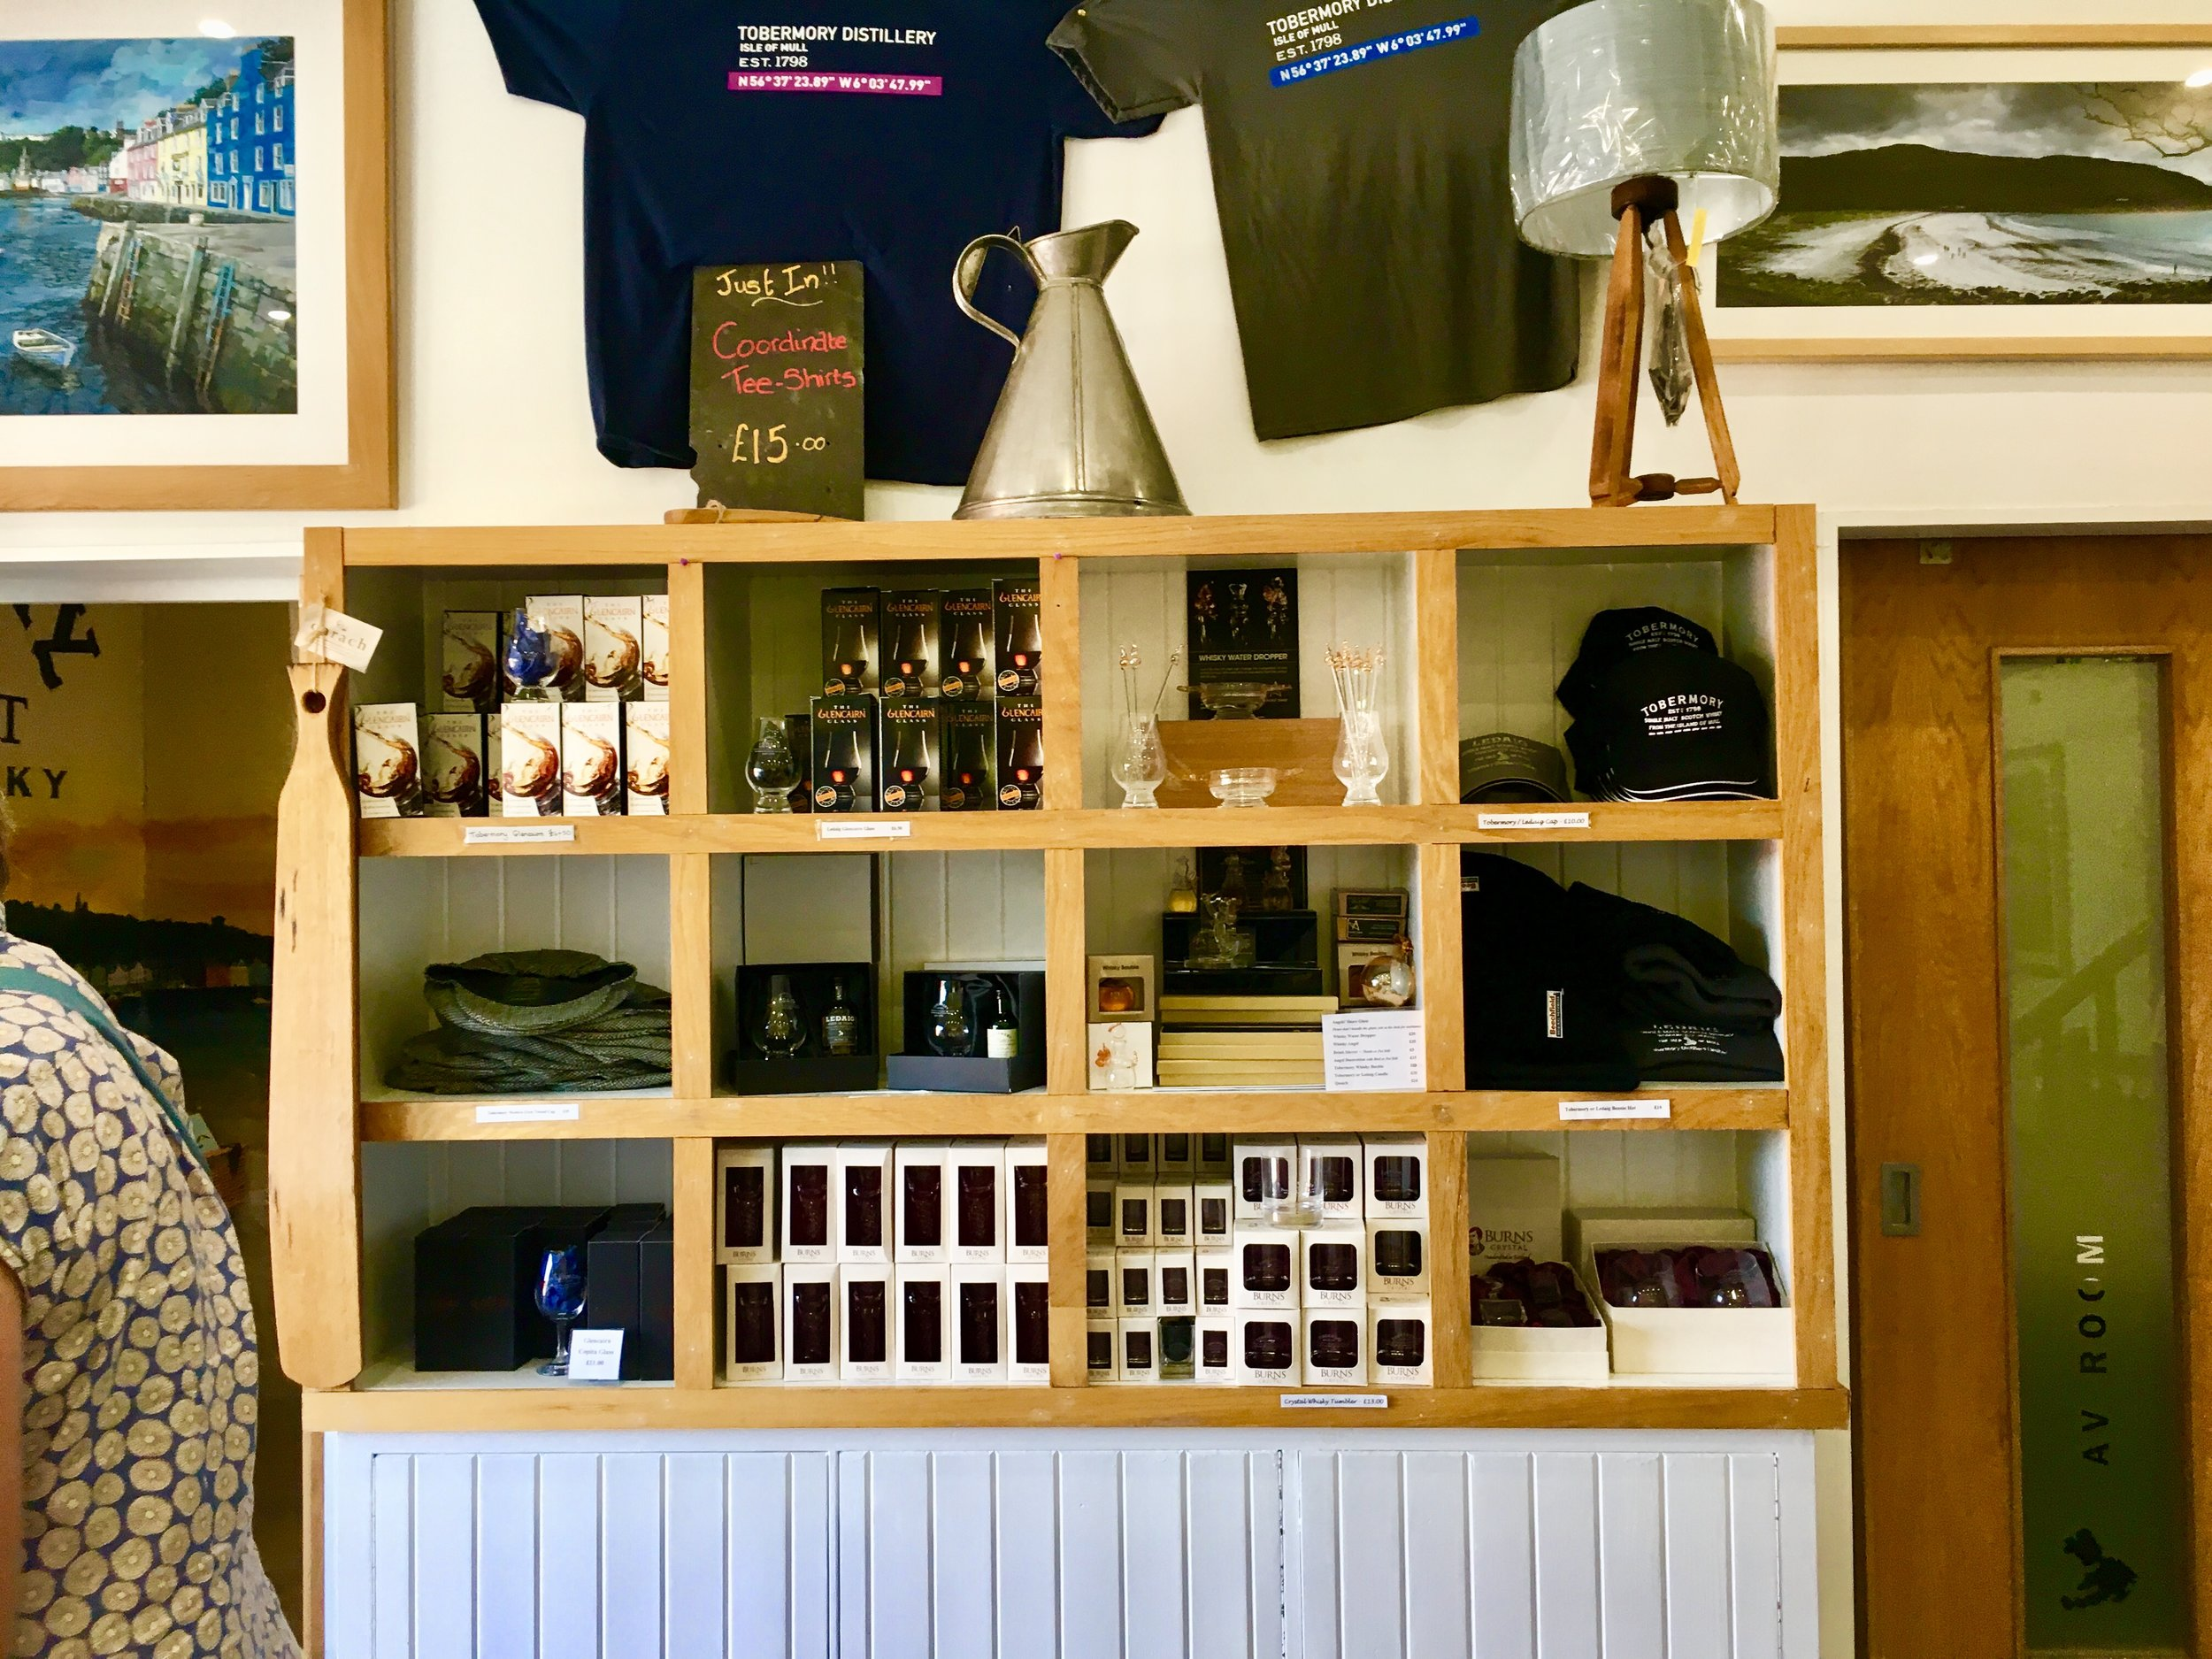 Tobermory Distillery offers more than just whiskey at the visitor center. Here you can purchase, hats, t-shirts and even soap made with whiskey!